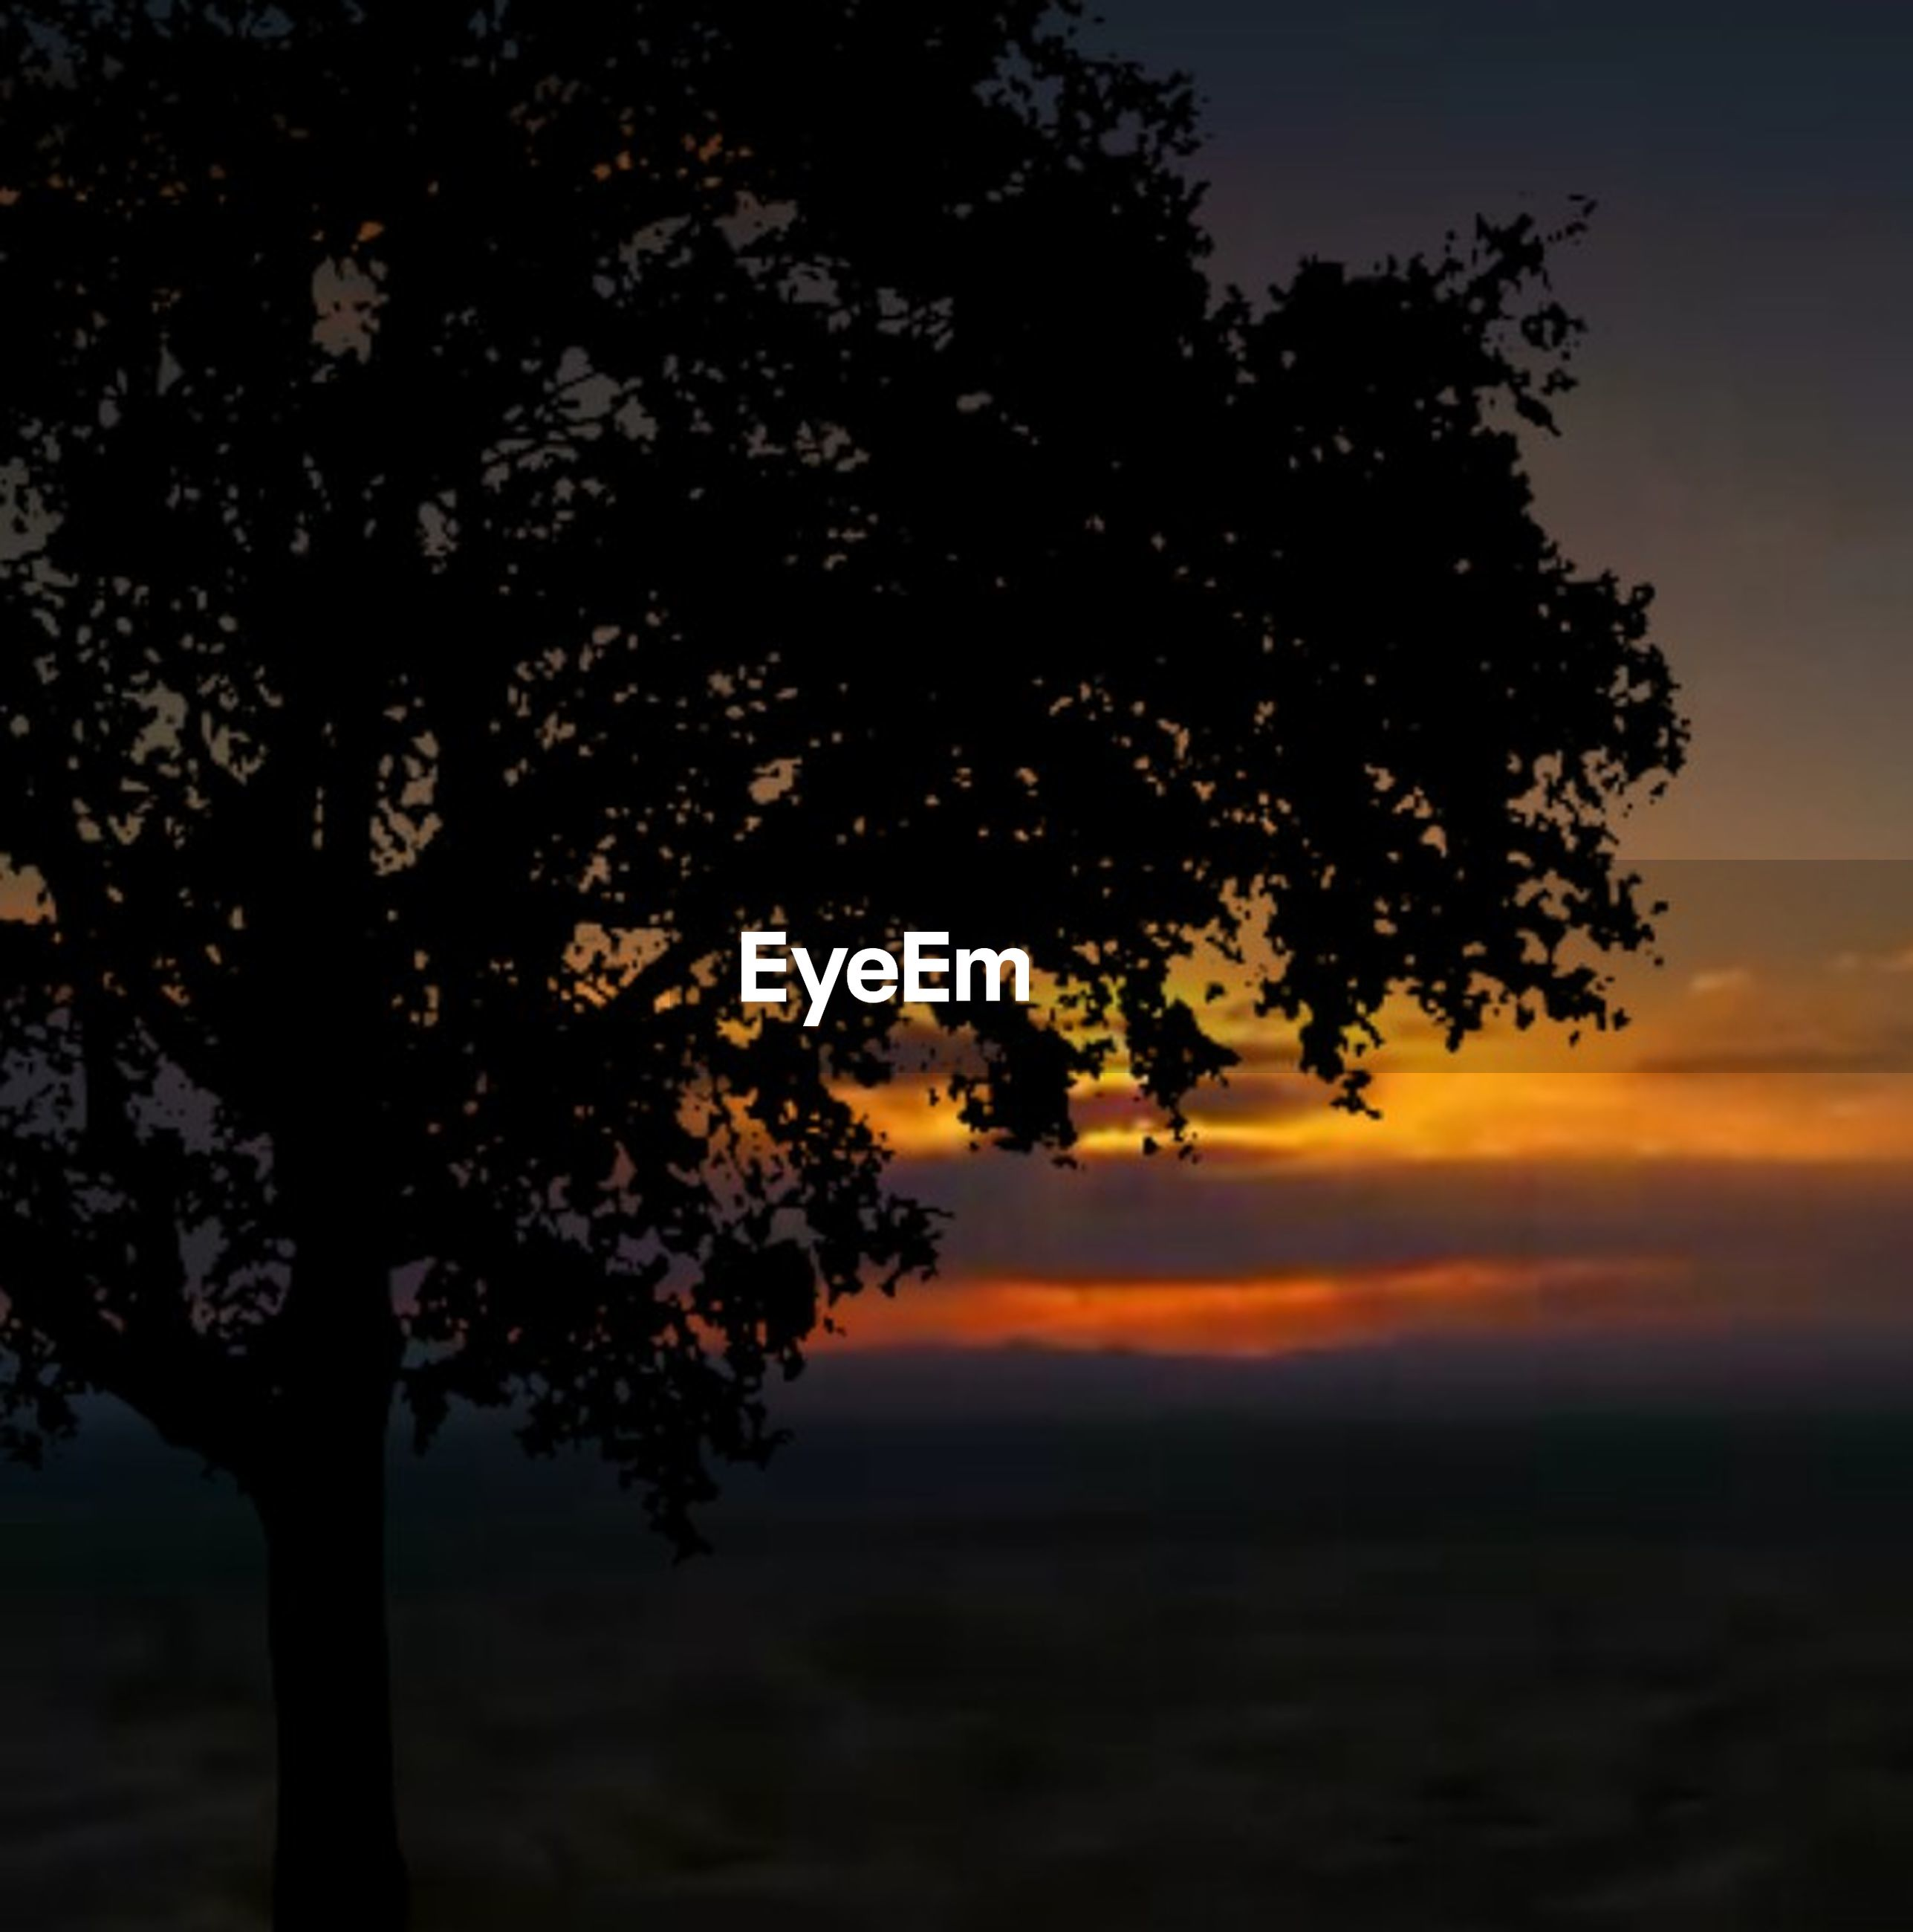 tree, plant, sky, beauty in nature, sunset, growth, tranquility, silhouette, nature, scenics - nature, tranquil scene, orange color, no people, outdoors, branch, idyllic, cloud - sky, non-urban scene, environment, land